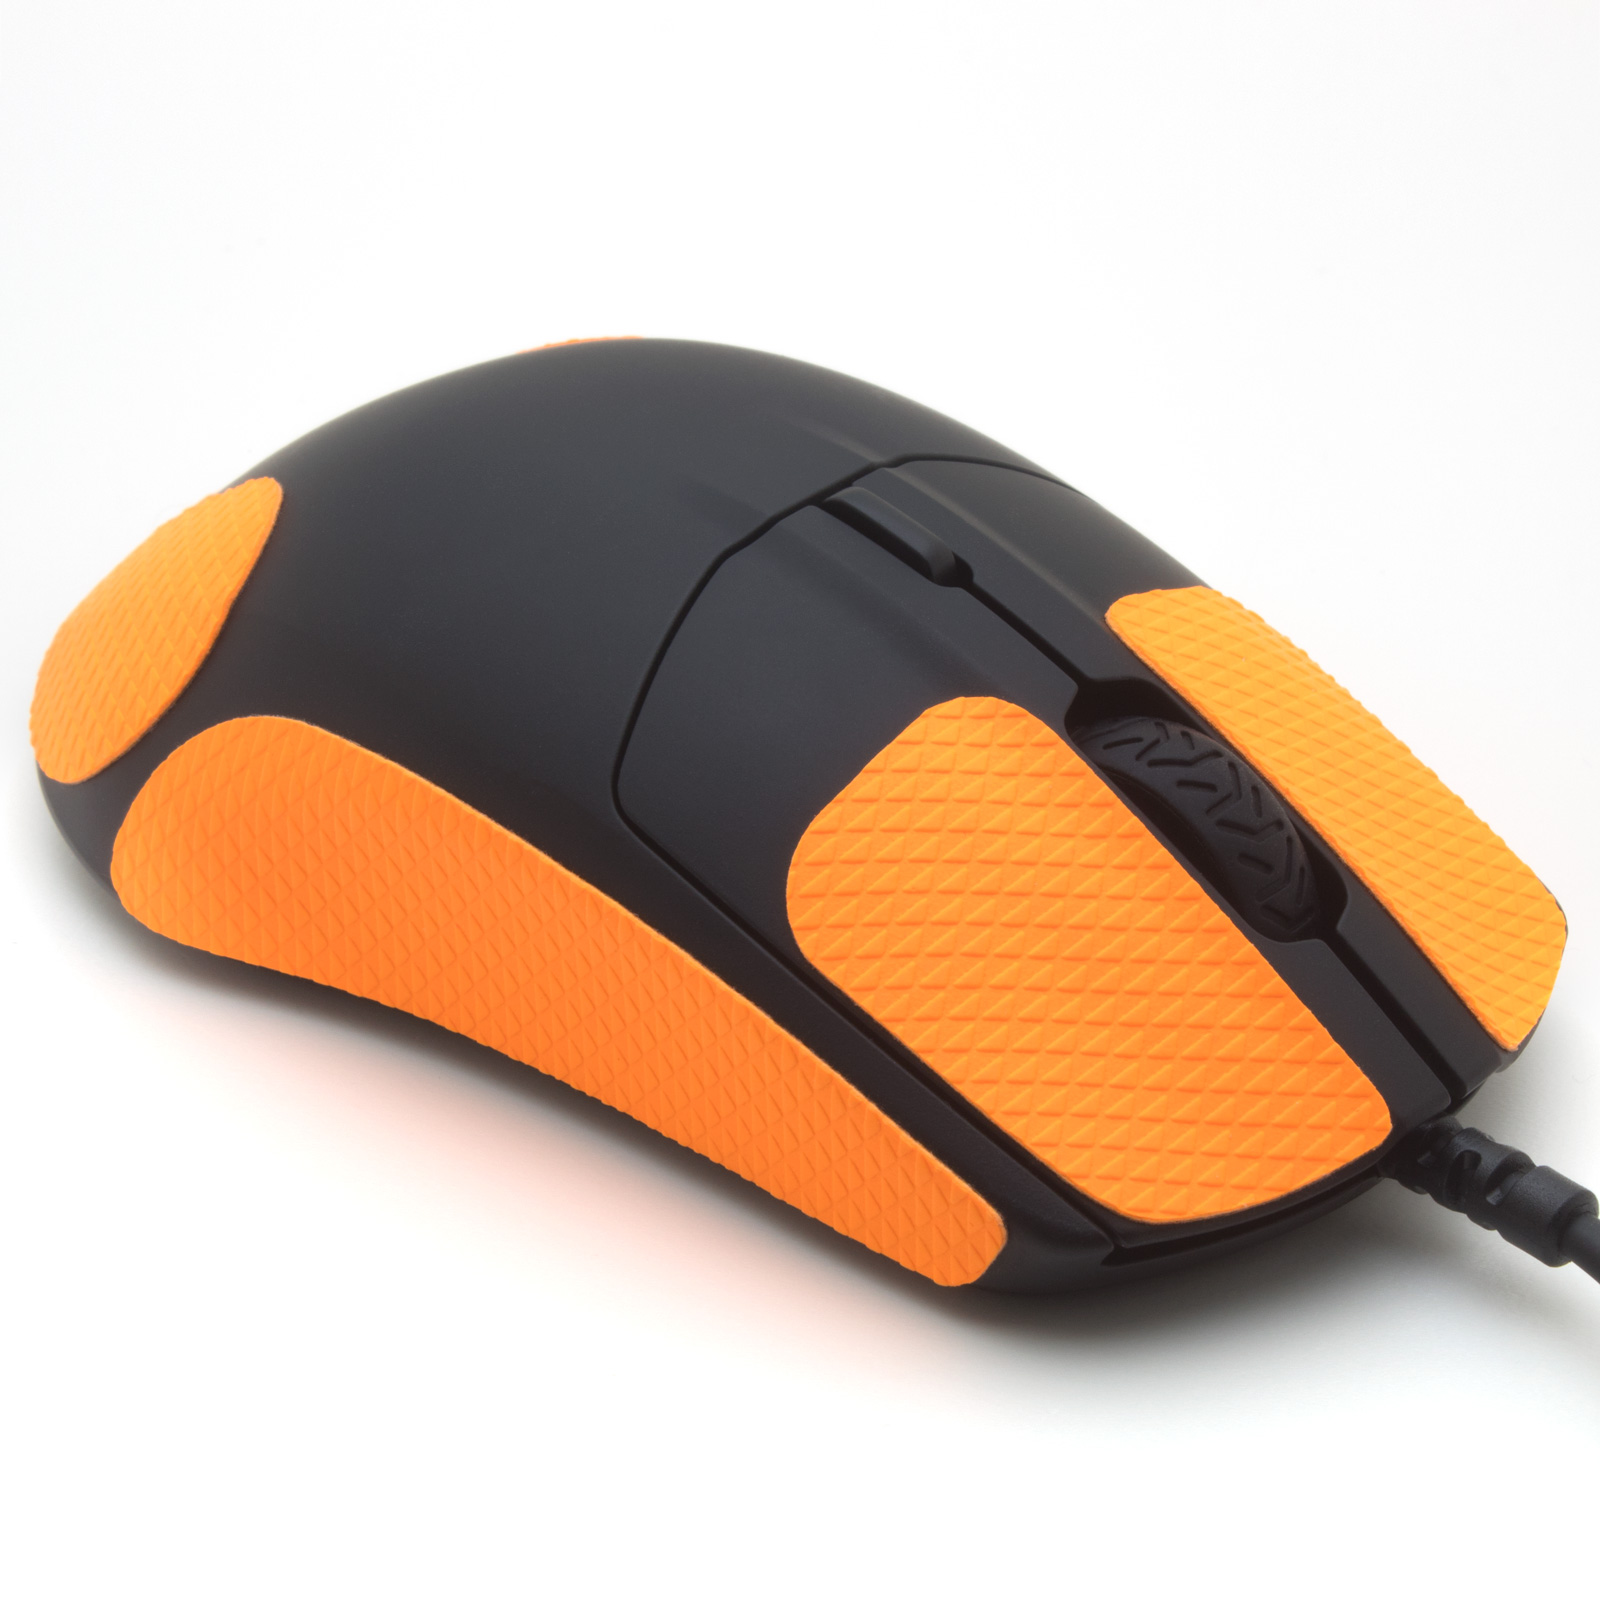 Mouse grip tape for SteelSeries Rival 3 from the brand TrueGrip - front right view